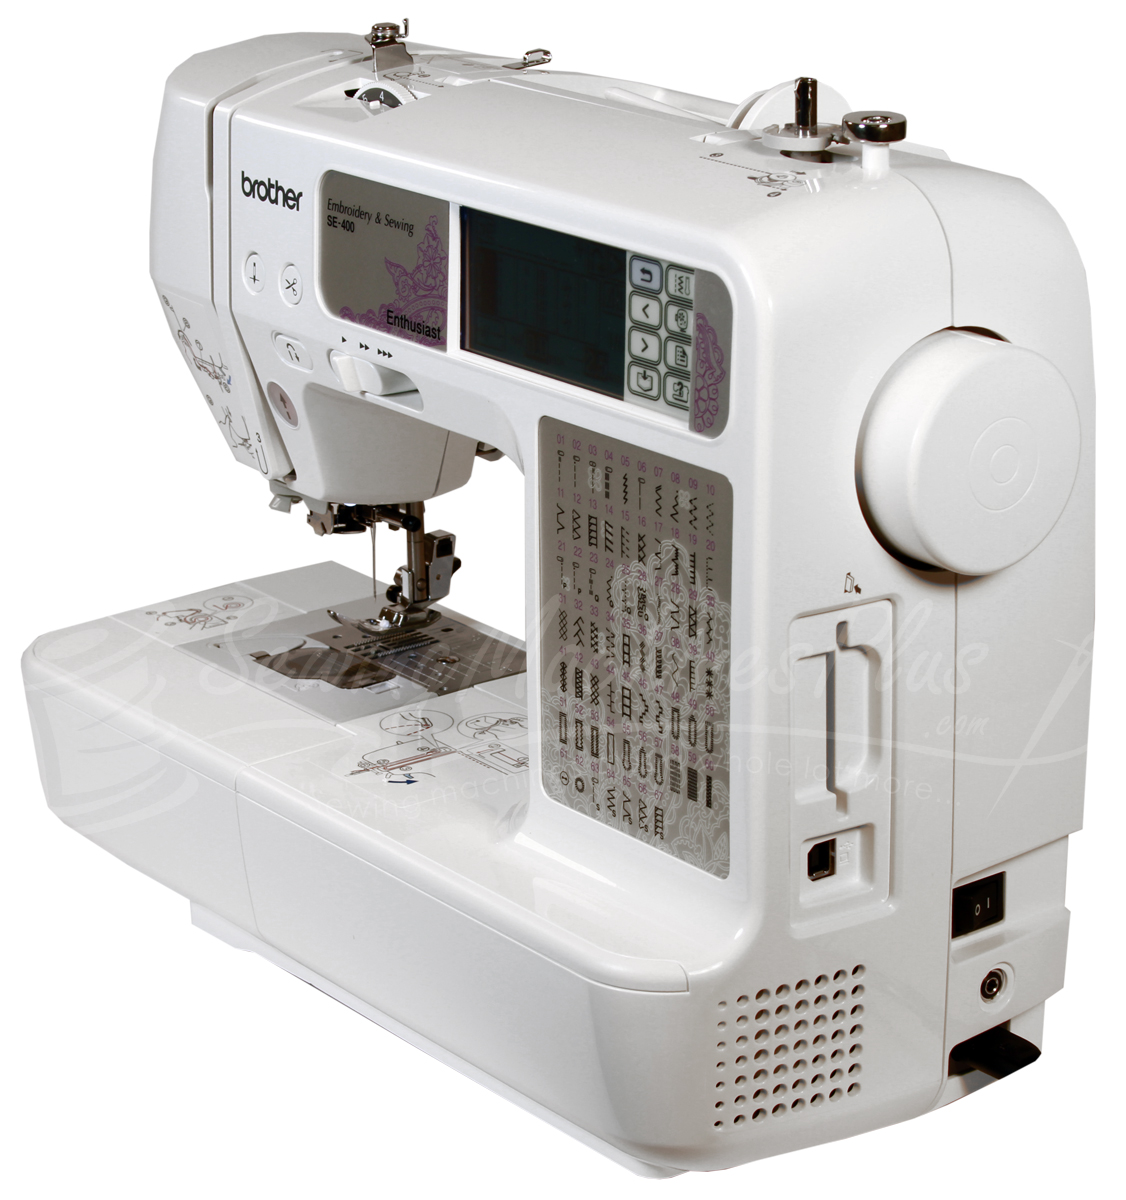 Brother SE-400 Sewing & Embroidery Machine With Computer